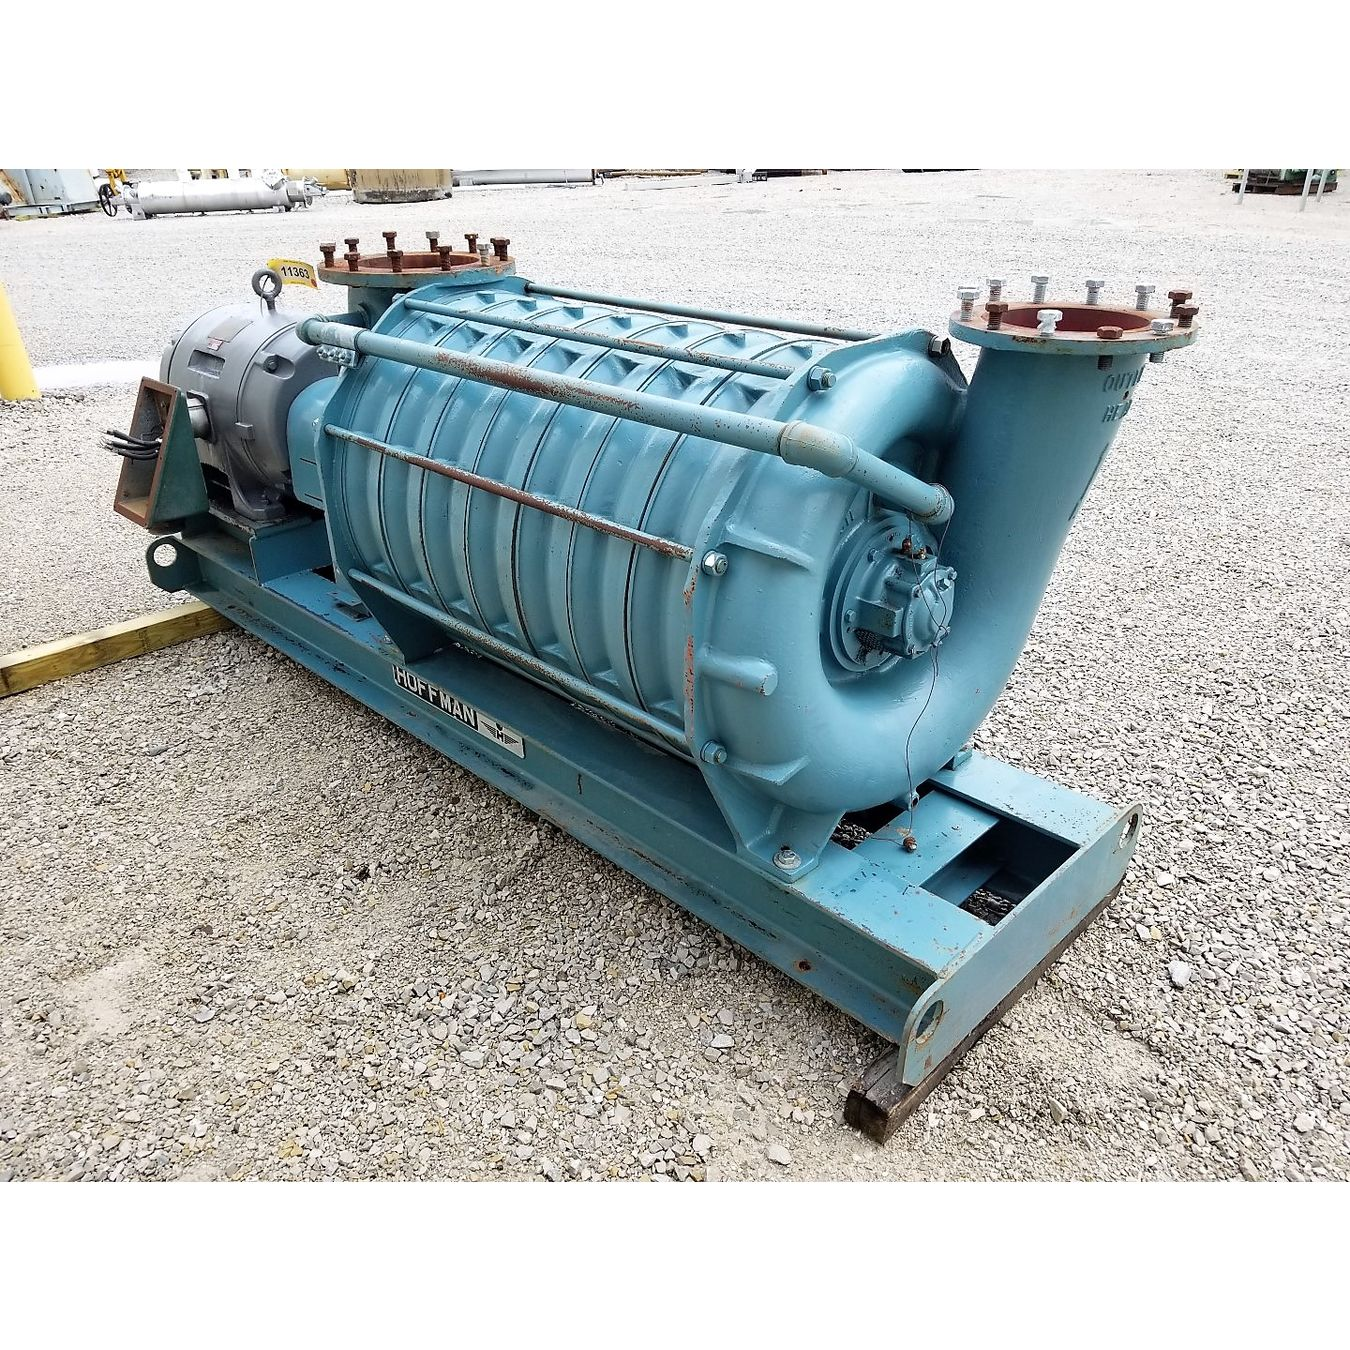 Us Navy Carriers Dvd further Treadmill Motor Conversion besides Siemens 800 Hp Electric Motor besides Fasco Electric Motors Cross Reference together with Fasco 12v Fan Motor. on p 02807271000p